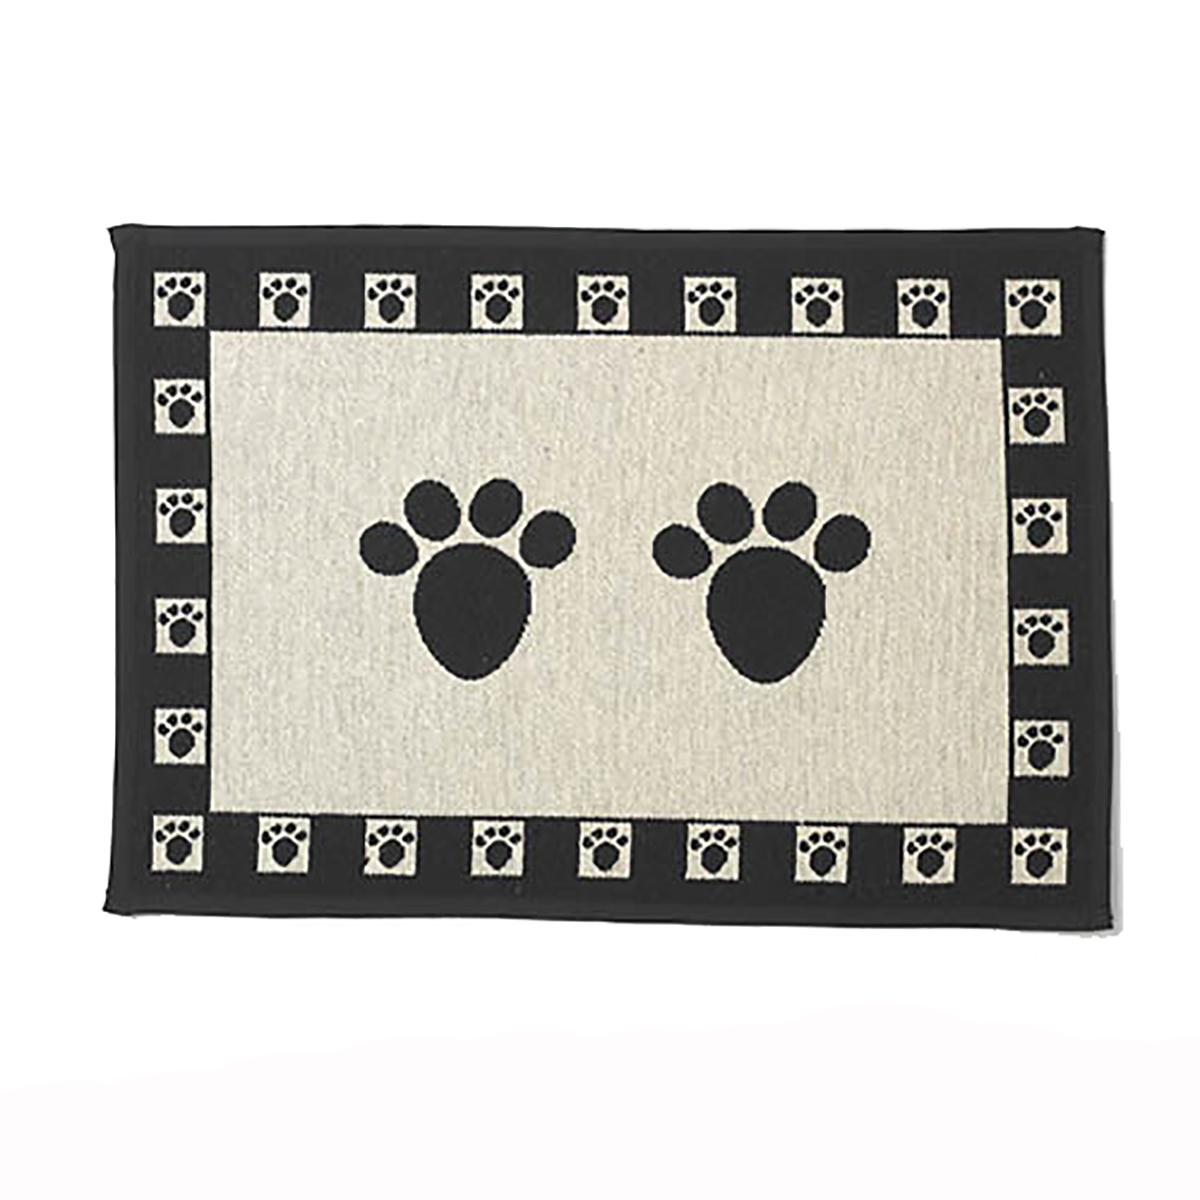 Paws Dog Tapestry Placemat Natural And Blac Baxterboo